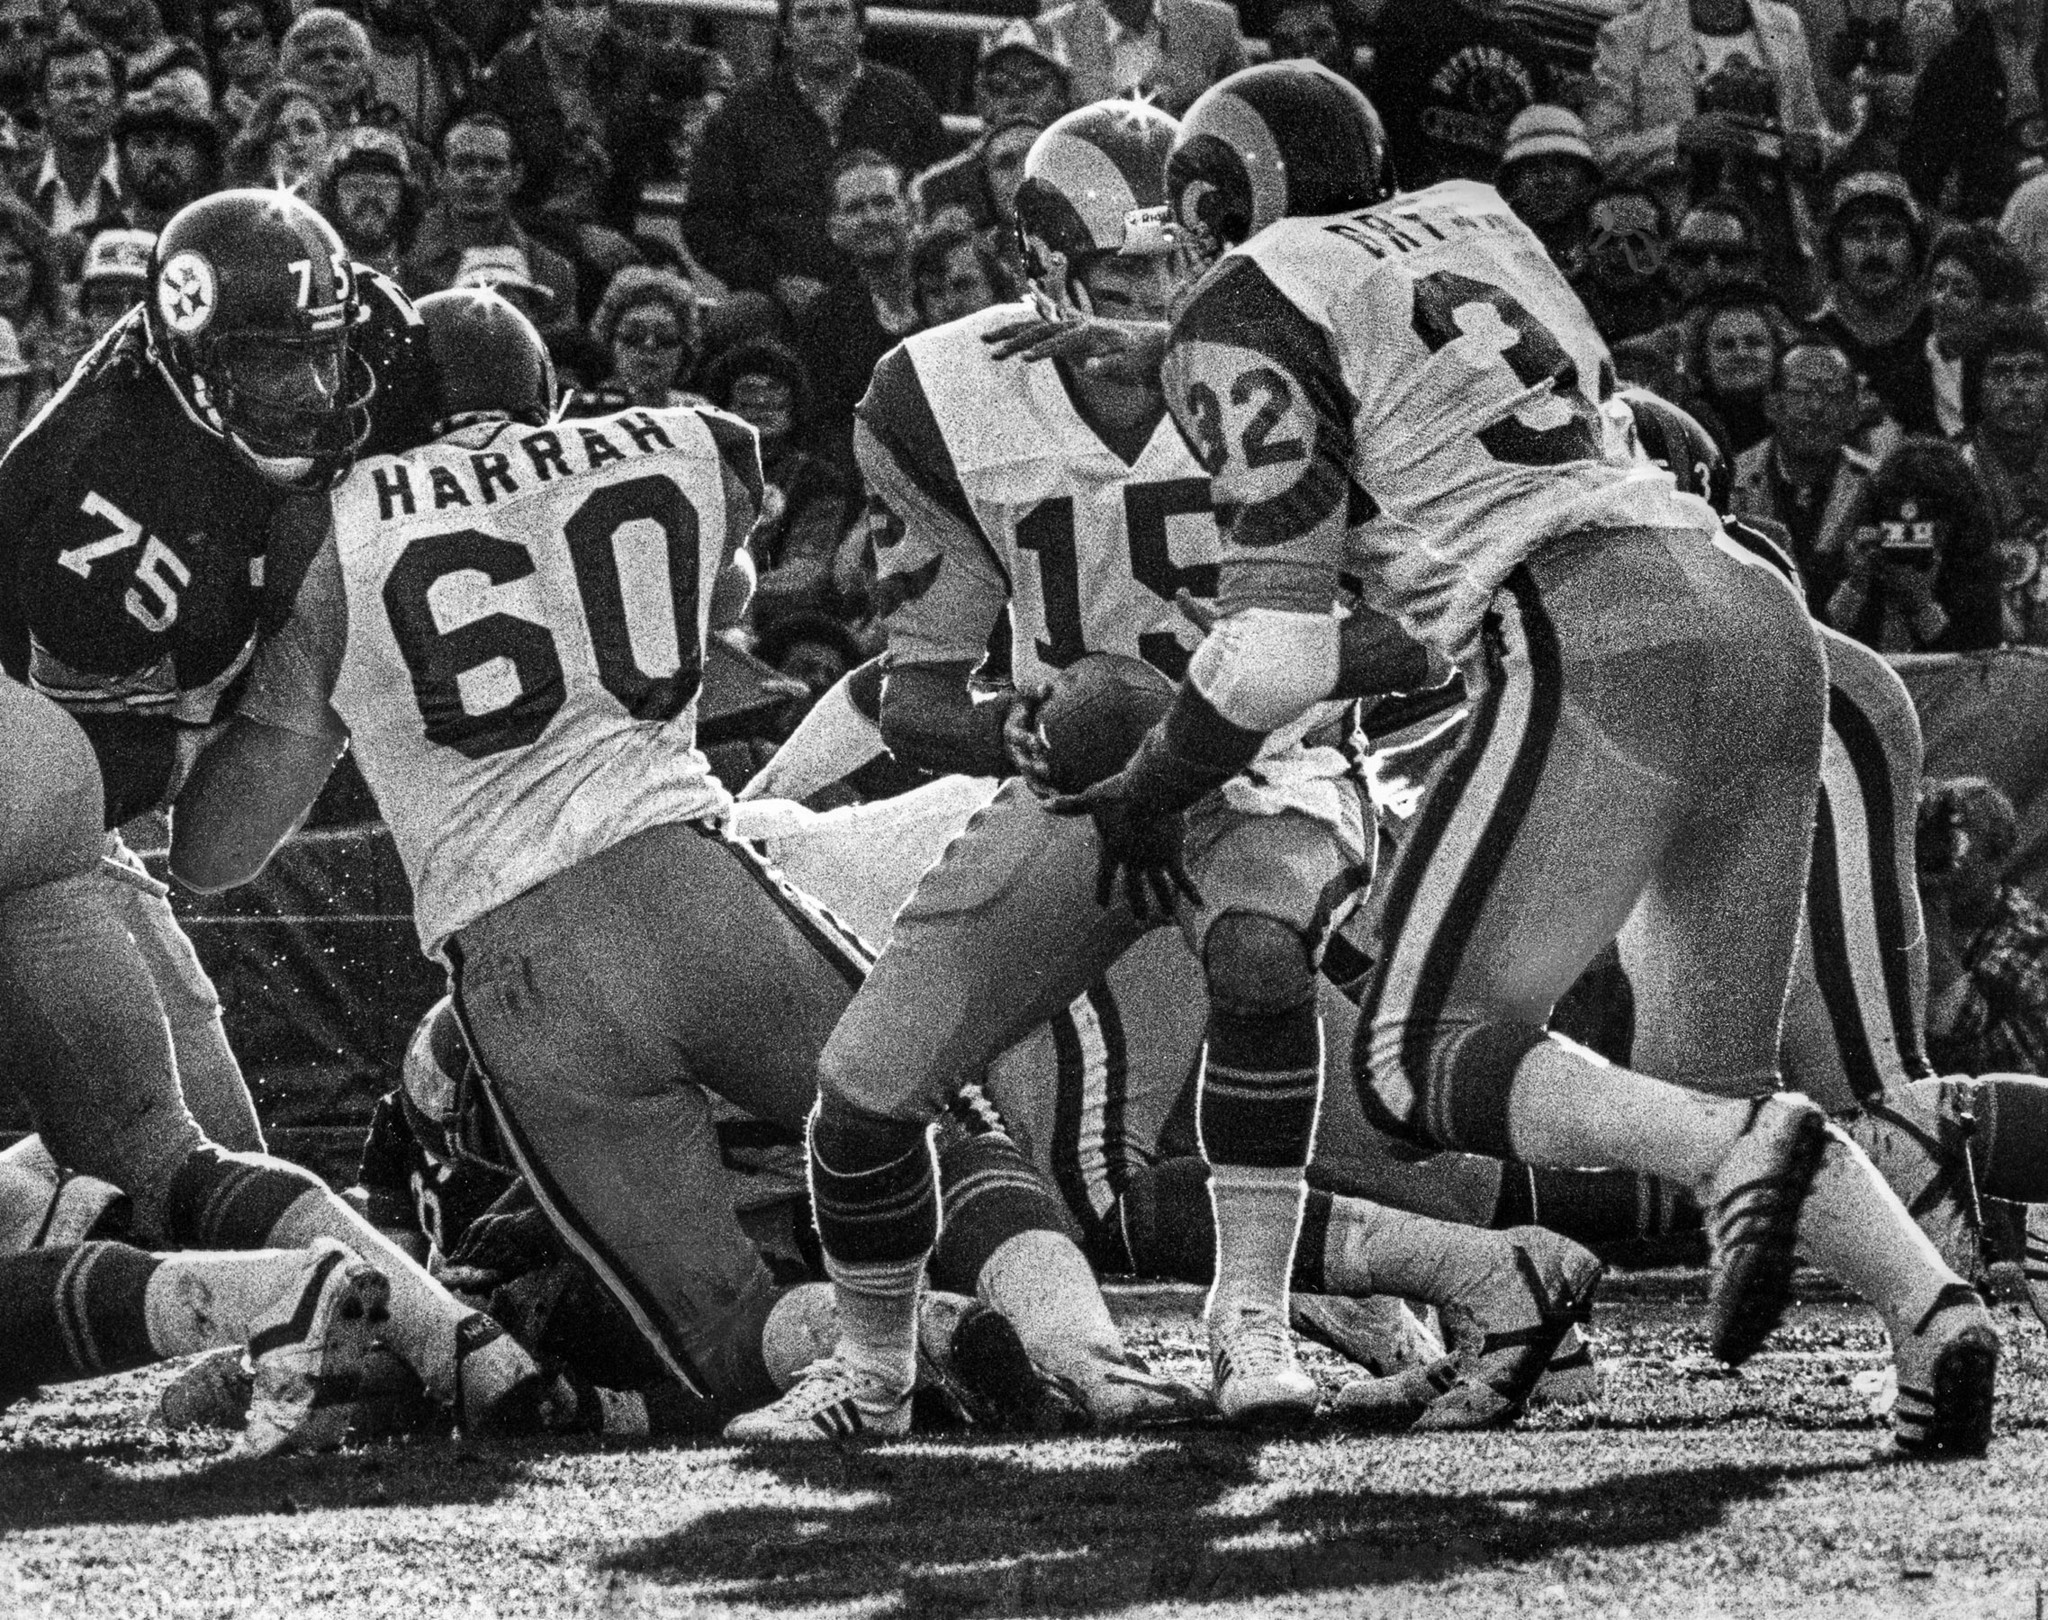 Jan. 20, 1980: Ram quarterback Vince Ferragamo hands off to Cullen Bryant as Dennis Harrah blocks Pi